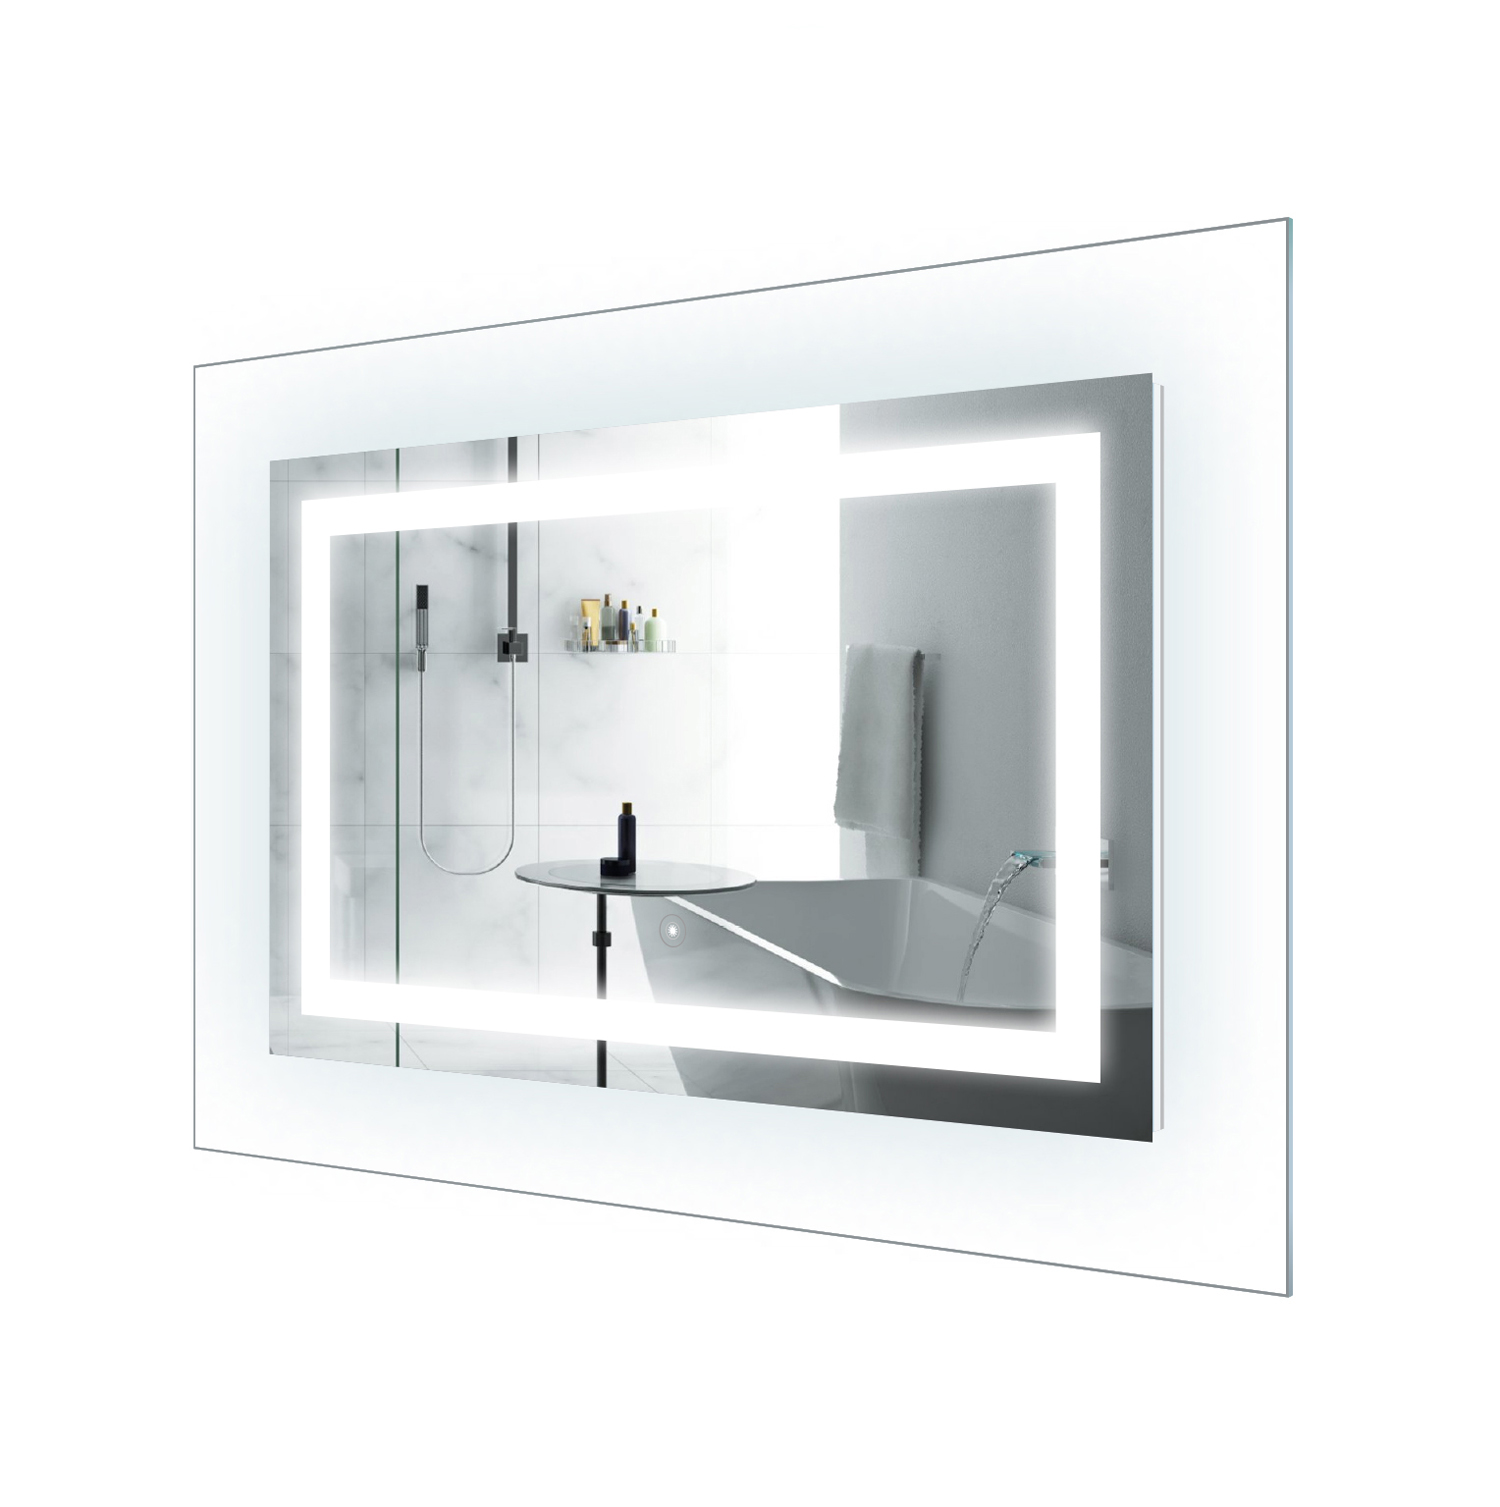 Led Lighted 42 Inch X 30 Inch Bathroom Mirror With Glass Frame Horizontal Or Vertical